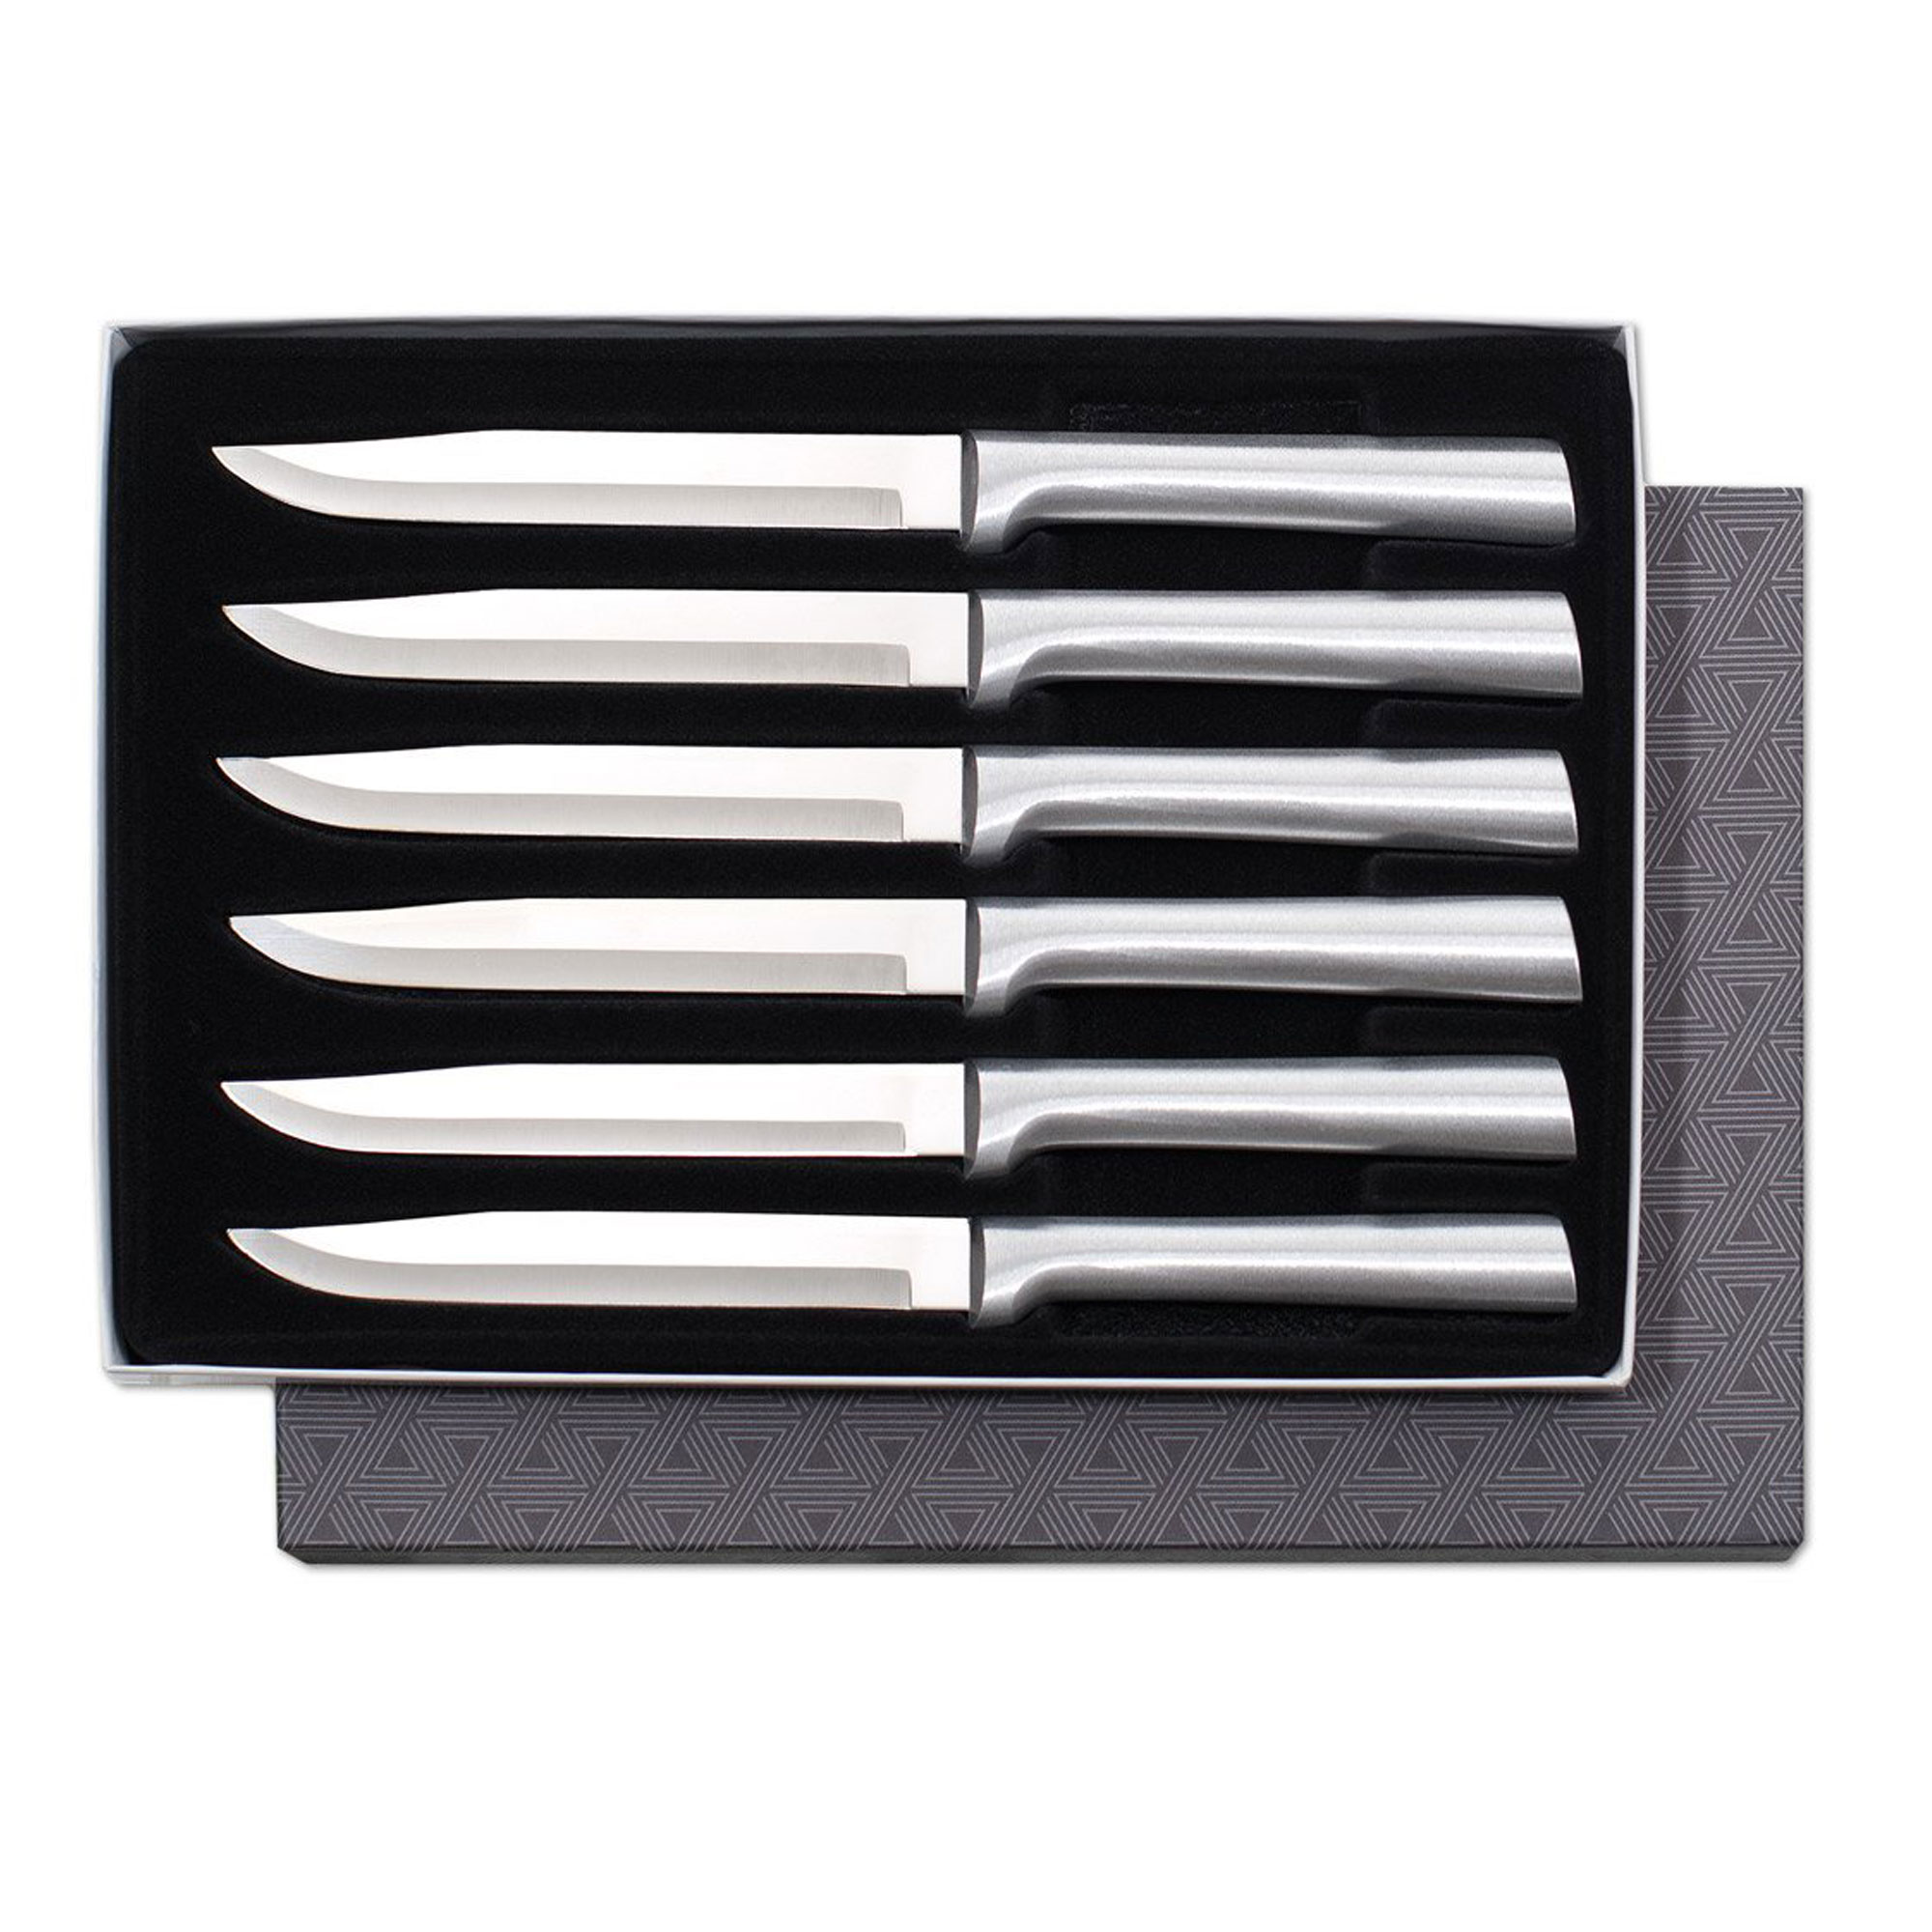 Rada Cutlery Utility Steak Knives Gift Set – Stainless Steel Blades With Aluminum Handles, Set of 6